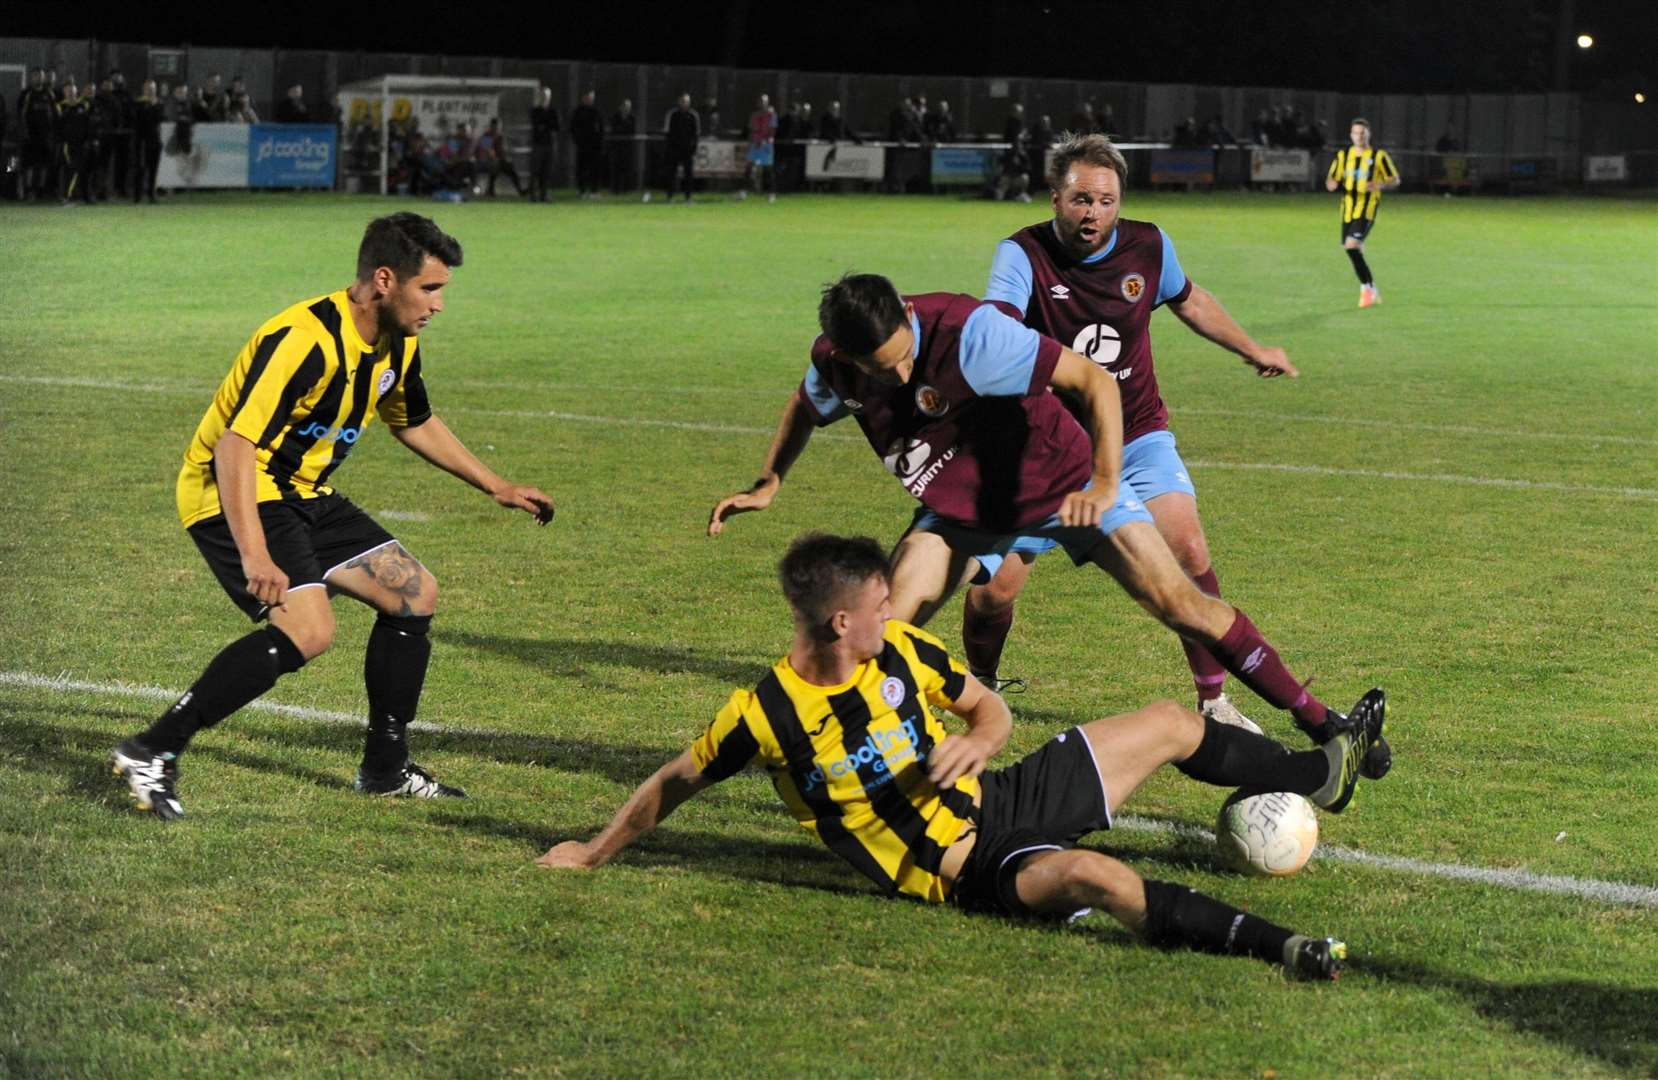 Holbeach United lost an early season derby clash with Deeping Rangers.